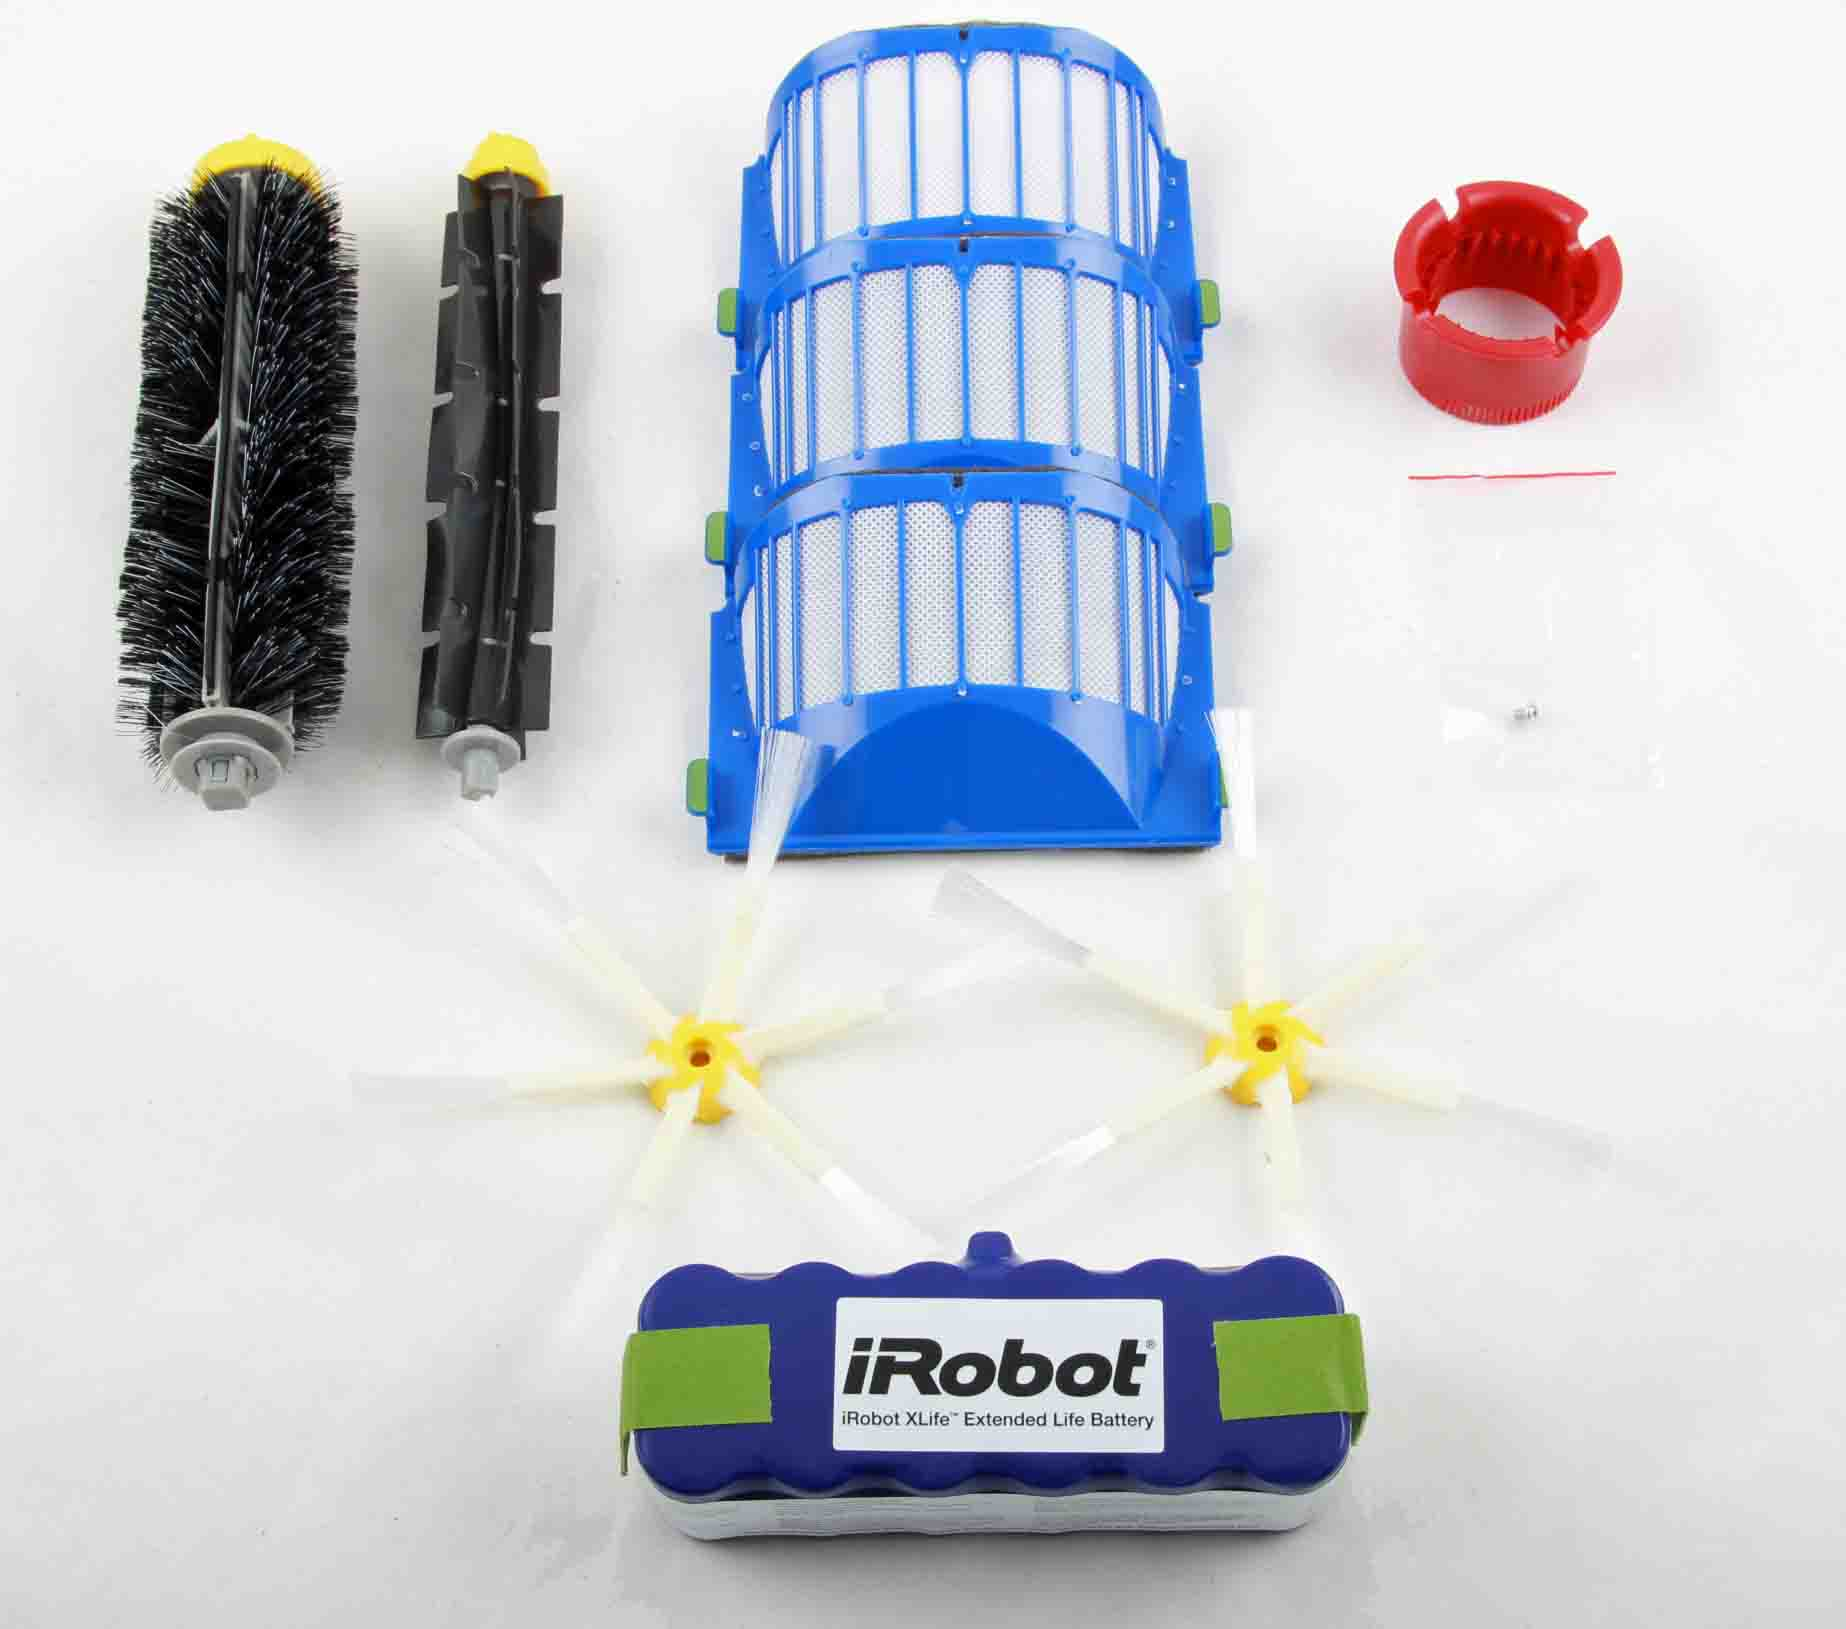 Roomba 600 Series Replenishment Kit 6 Arm with Xlife Battery